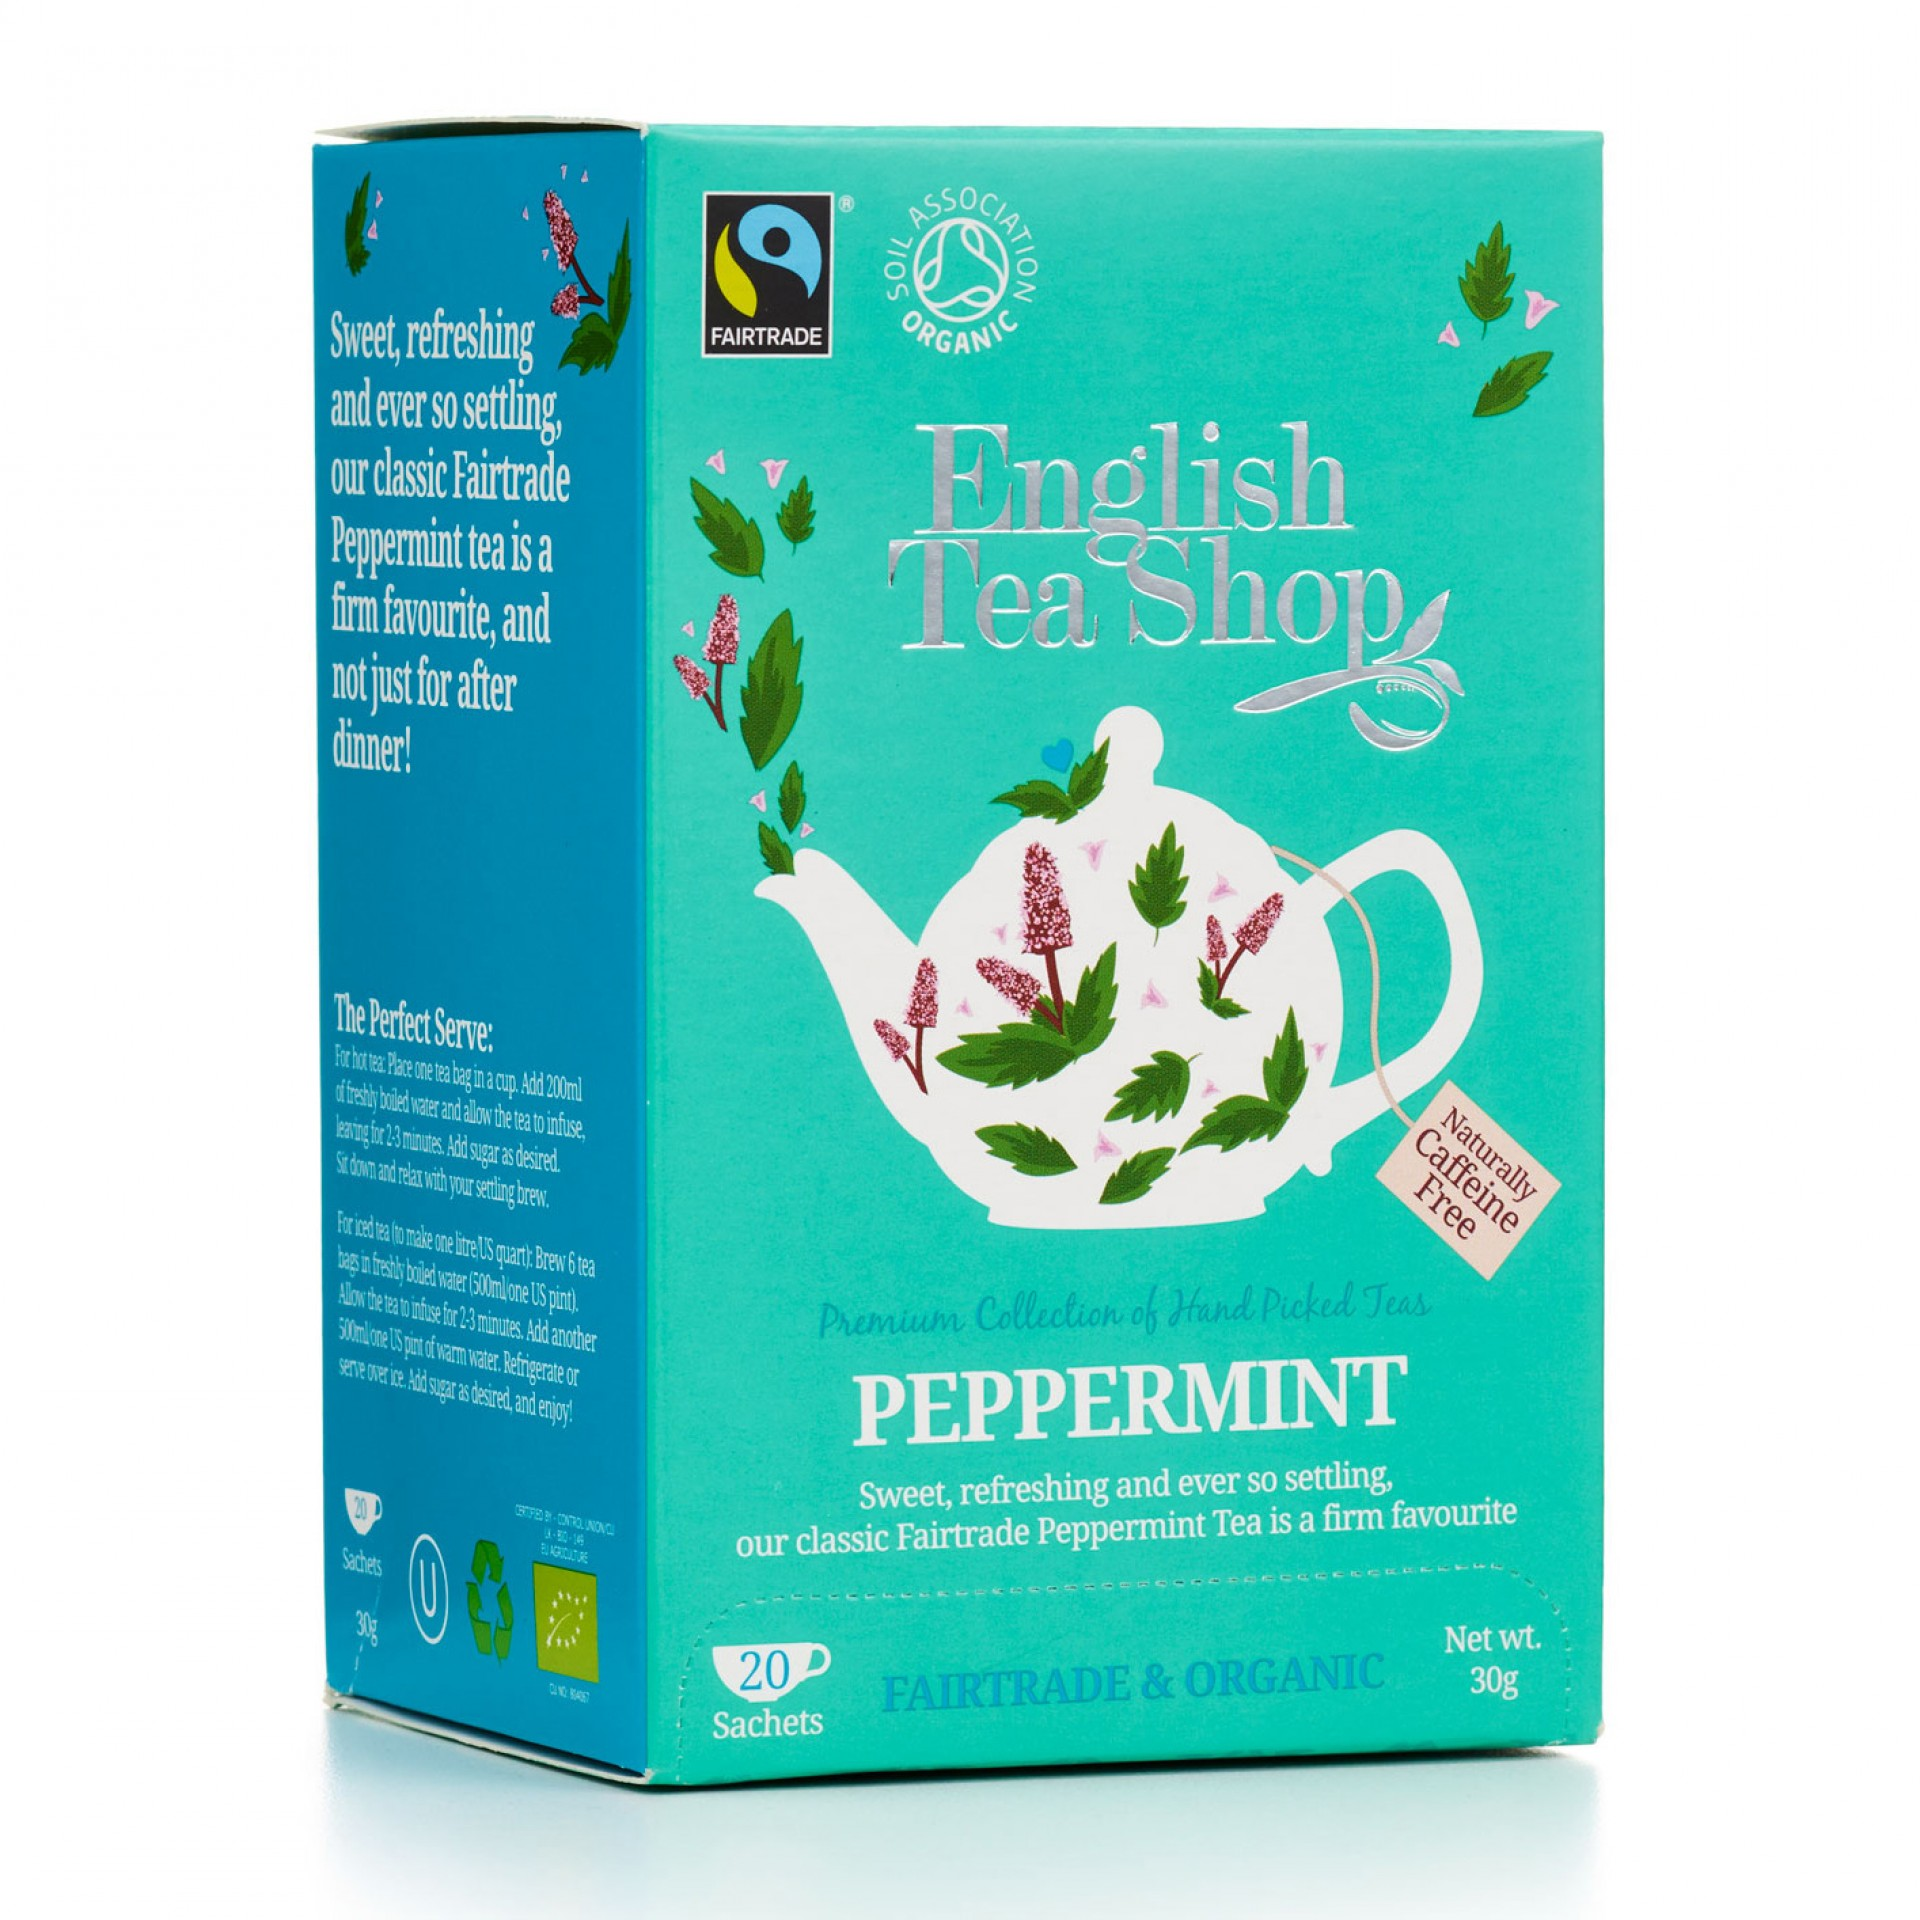 English Tea Shop - Peppermint Tag & Envelope Tea Bags